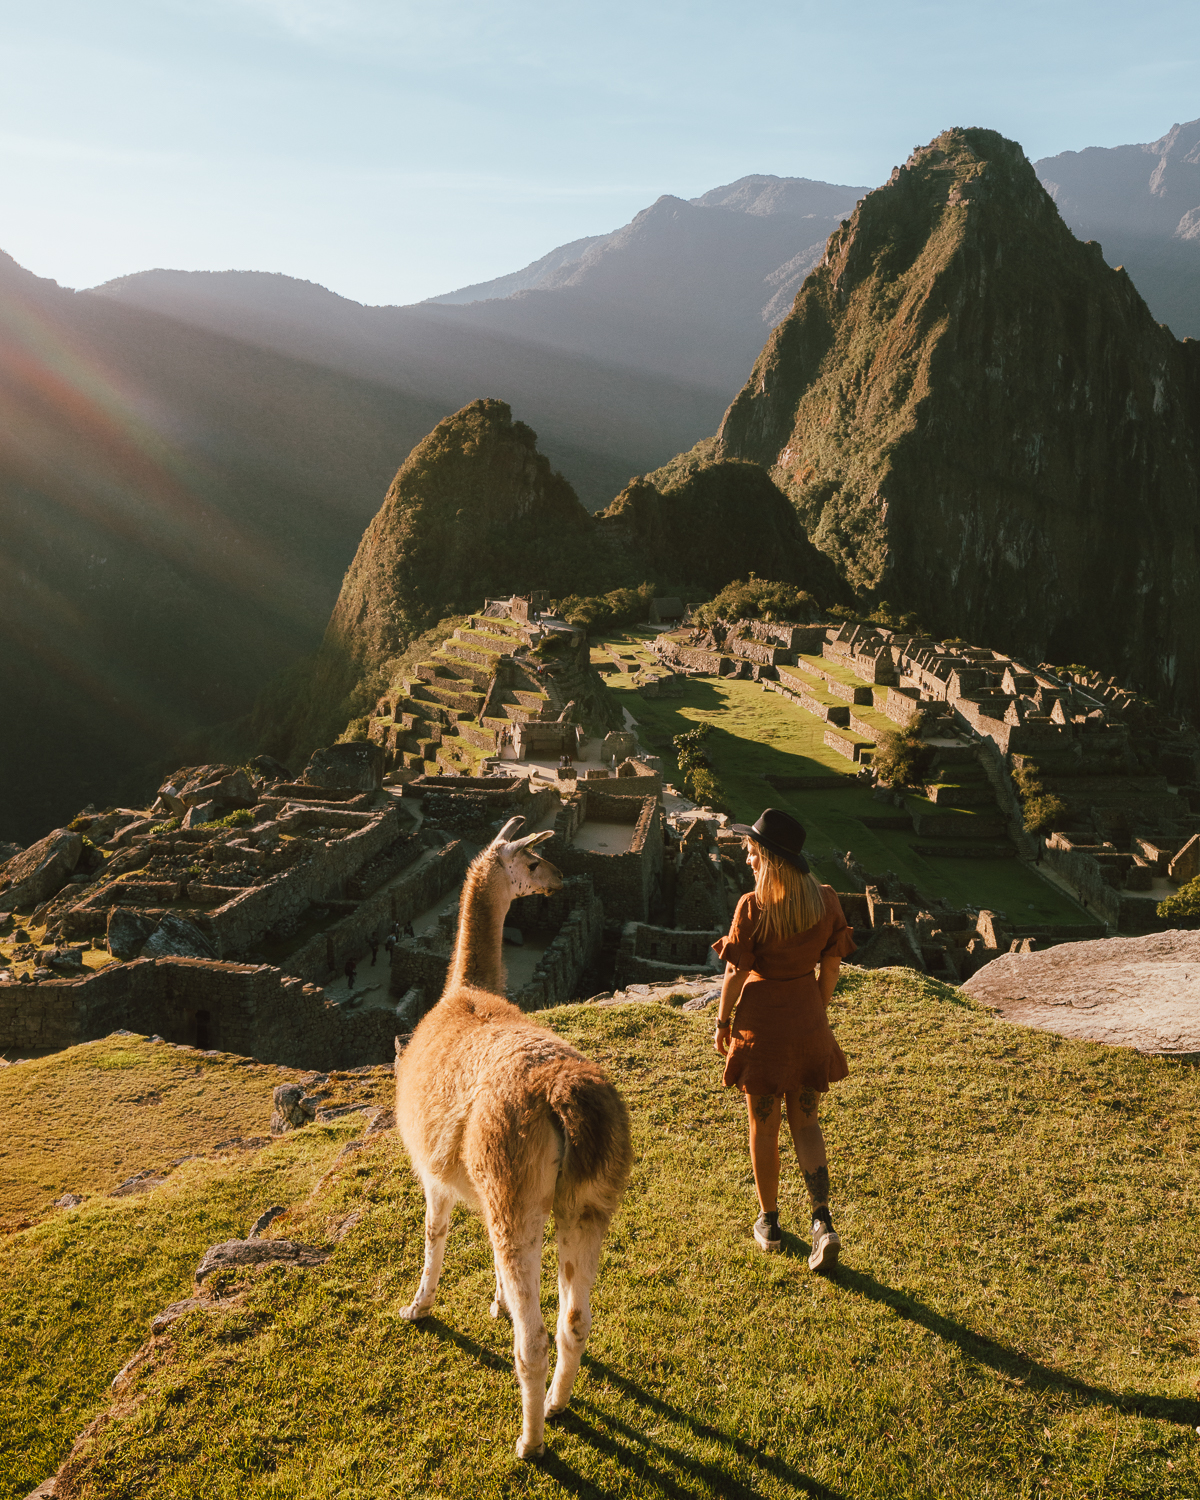 Melissa_Findley-Peru-PromPeru-01.jpg